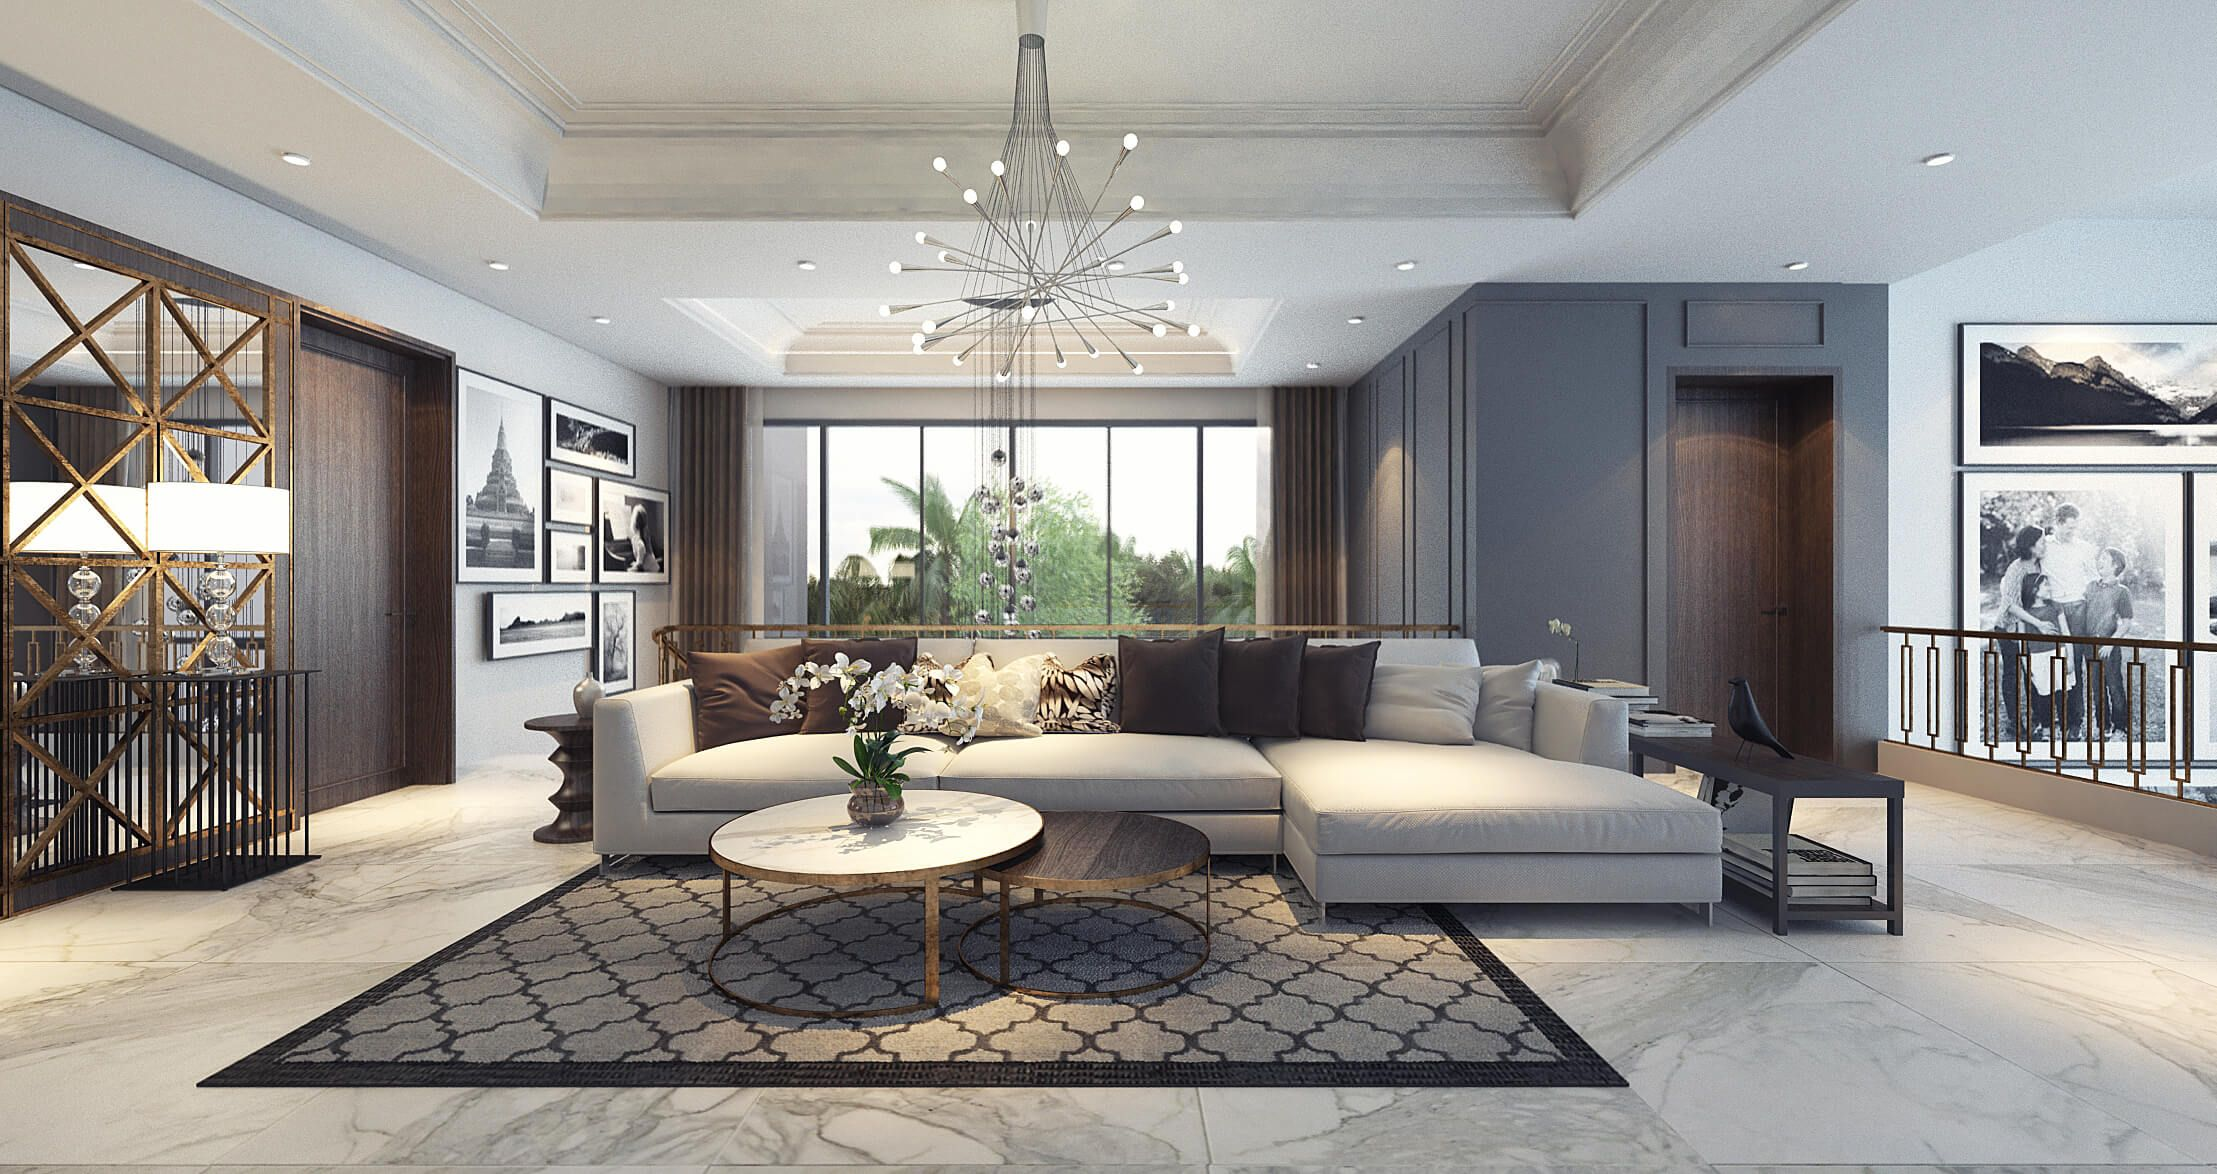 Pin by rivka on interior design ideas pinterest living rooms